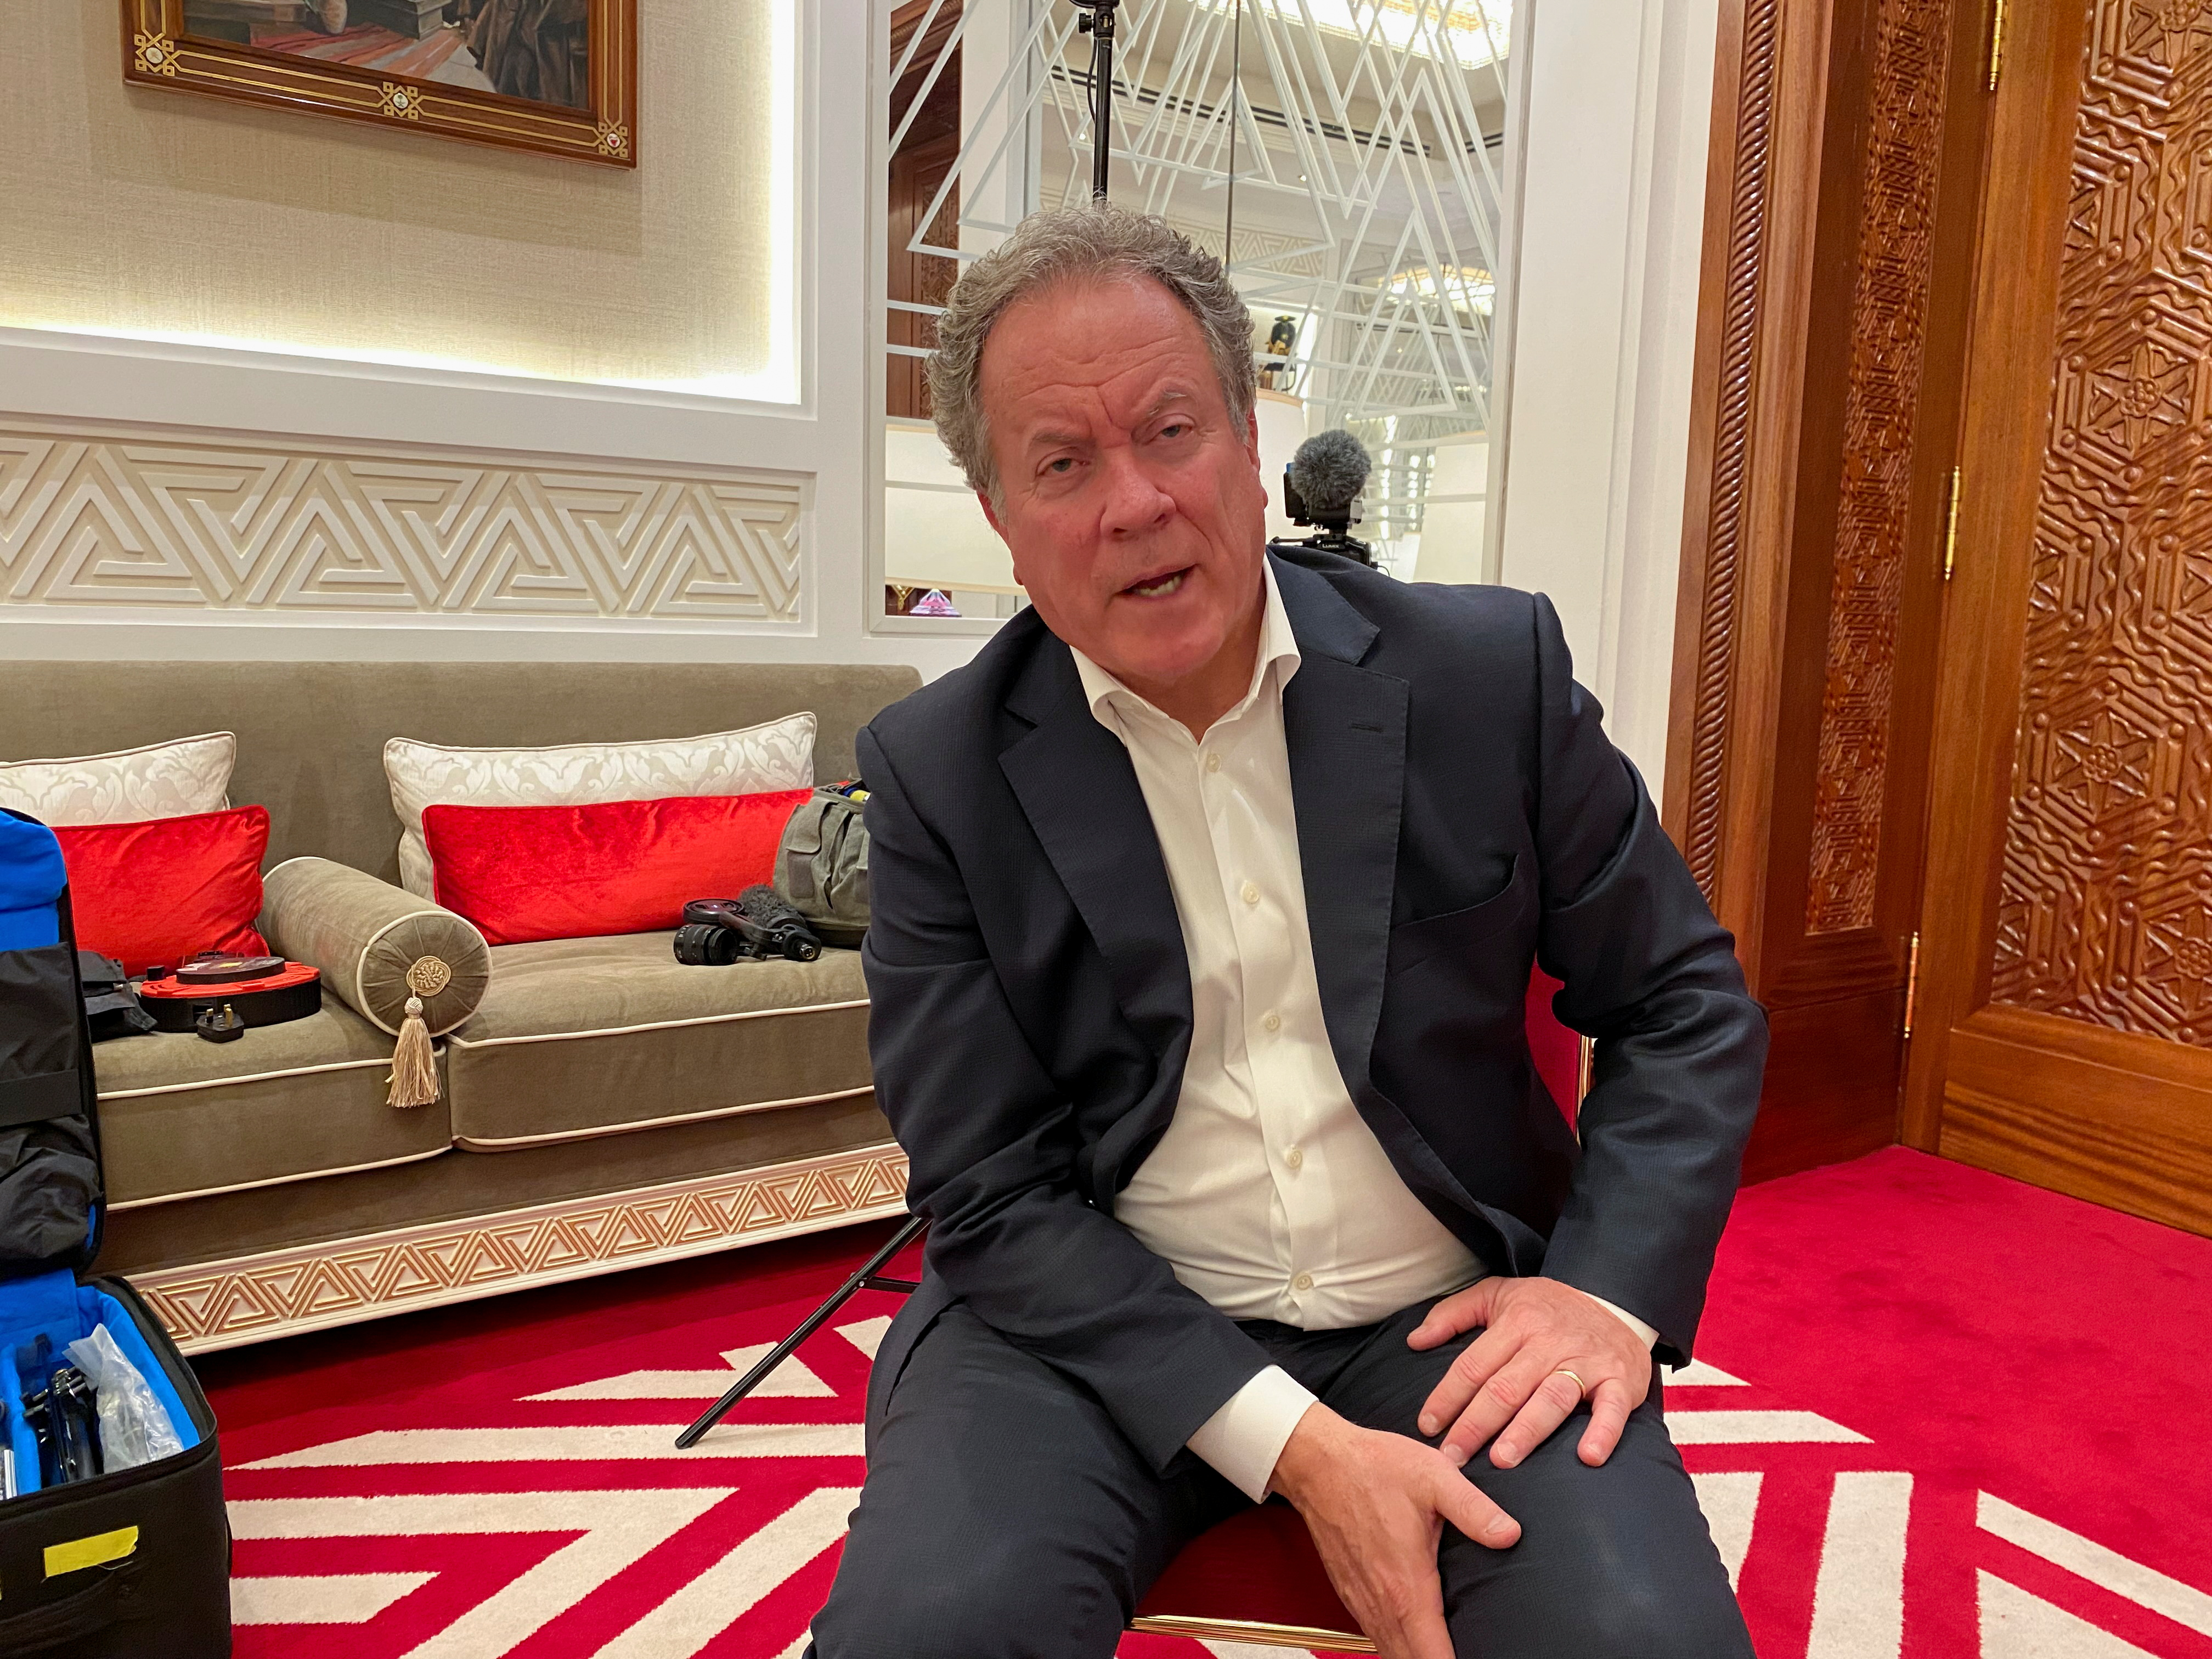 World Food Programme Executive Director David Beasley speaks during an interview with Reuters in Doha, Qatar, August 24, 2021. REUTERS/Alexander Cornwell